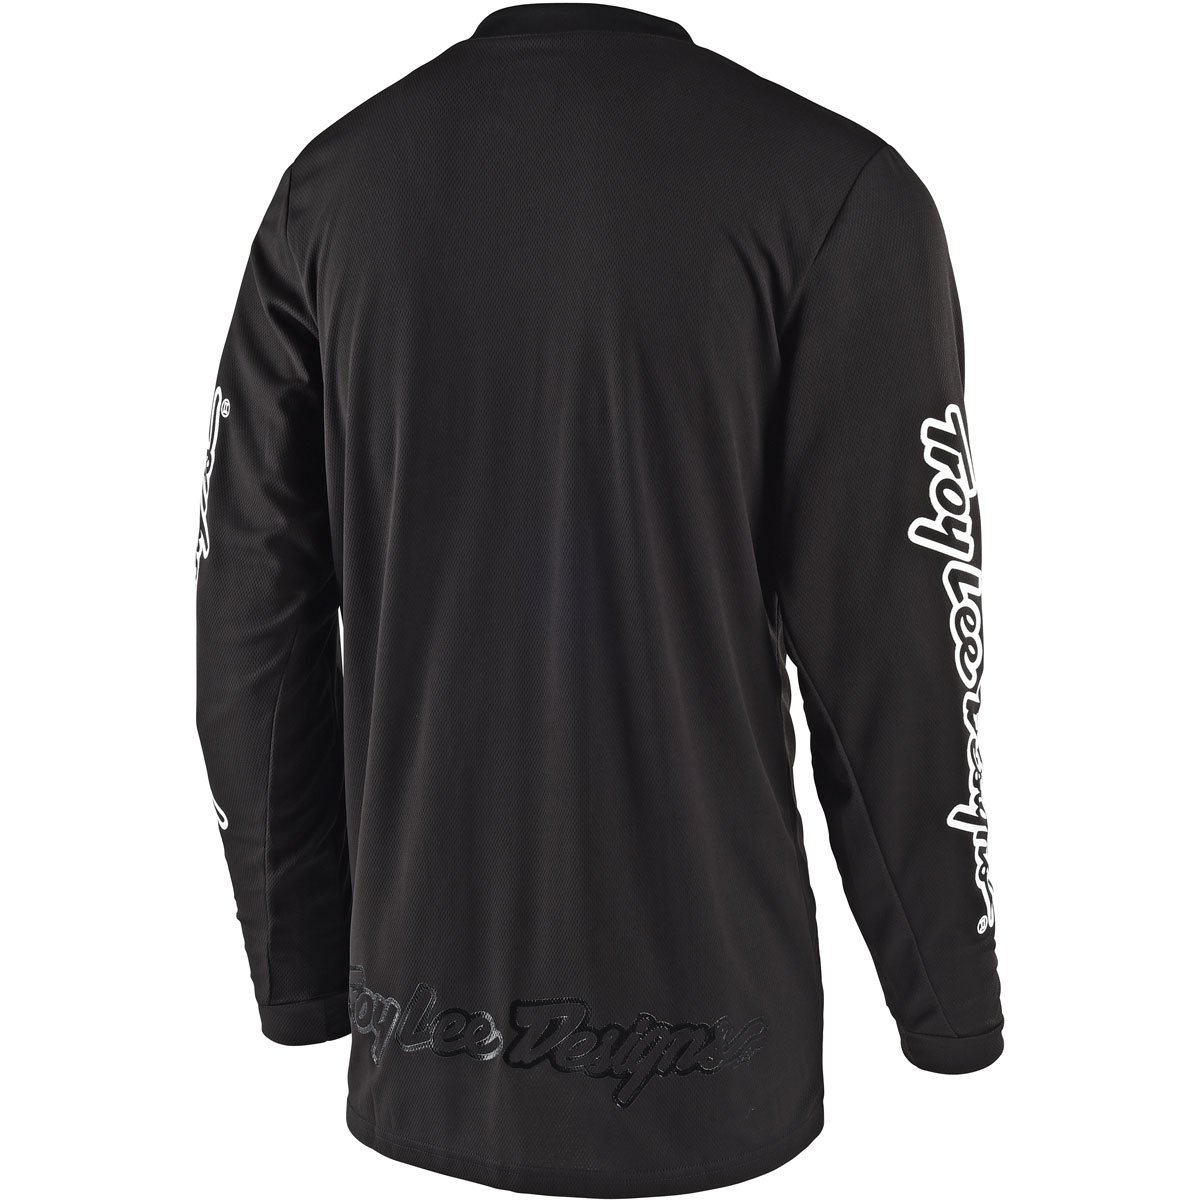 Troy Lee Designs Unisex GP Mono Jersey (Black, ADULT  XX-Large) by Troy Lee Designs (Image #2)